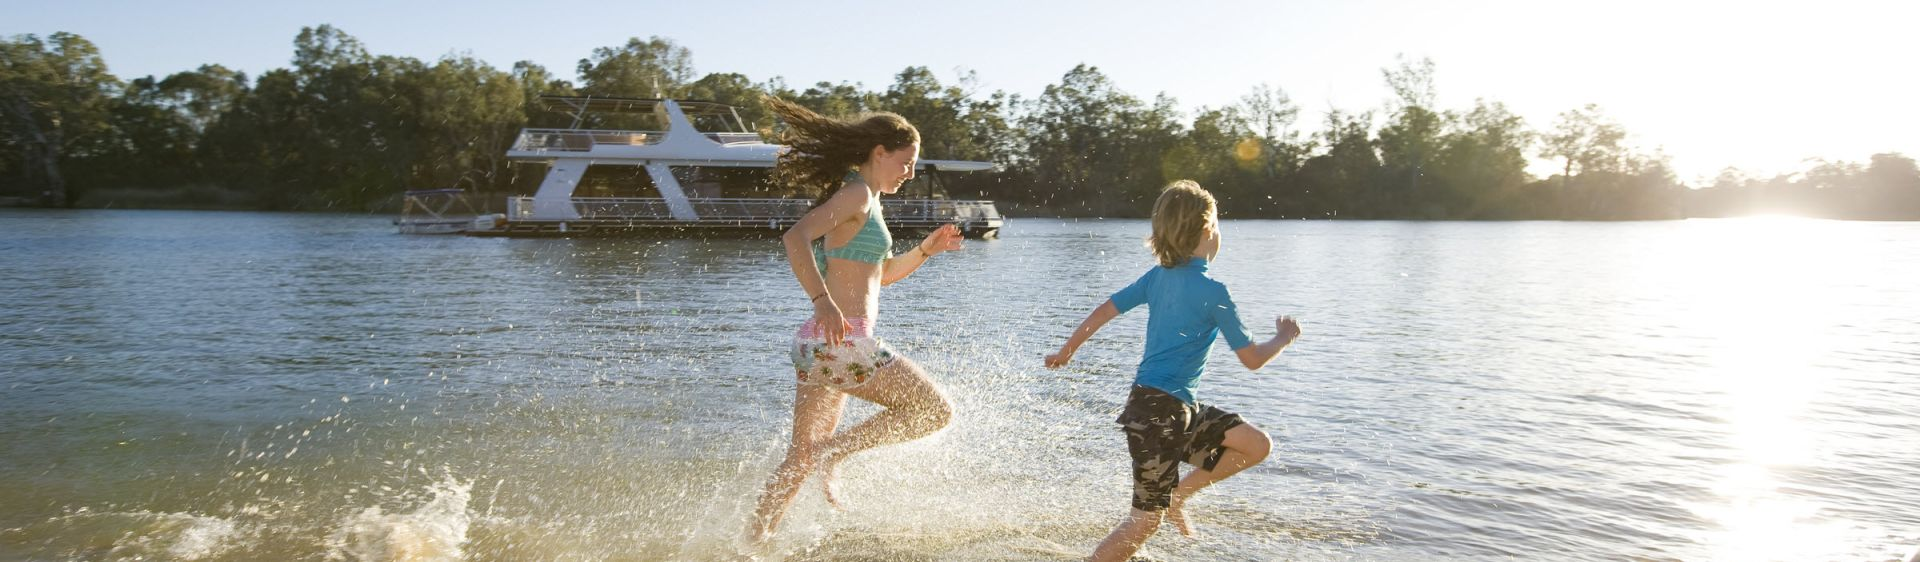 Children, Murray river